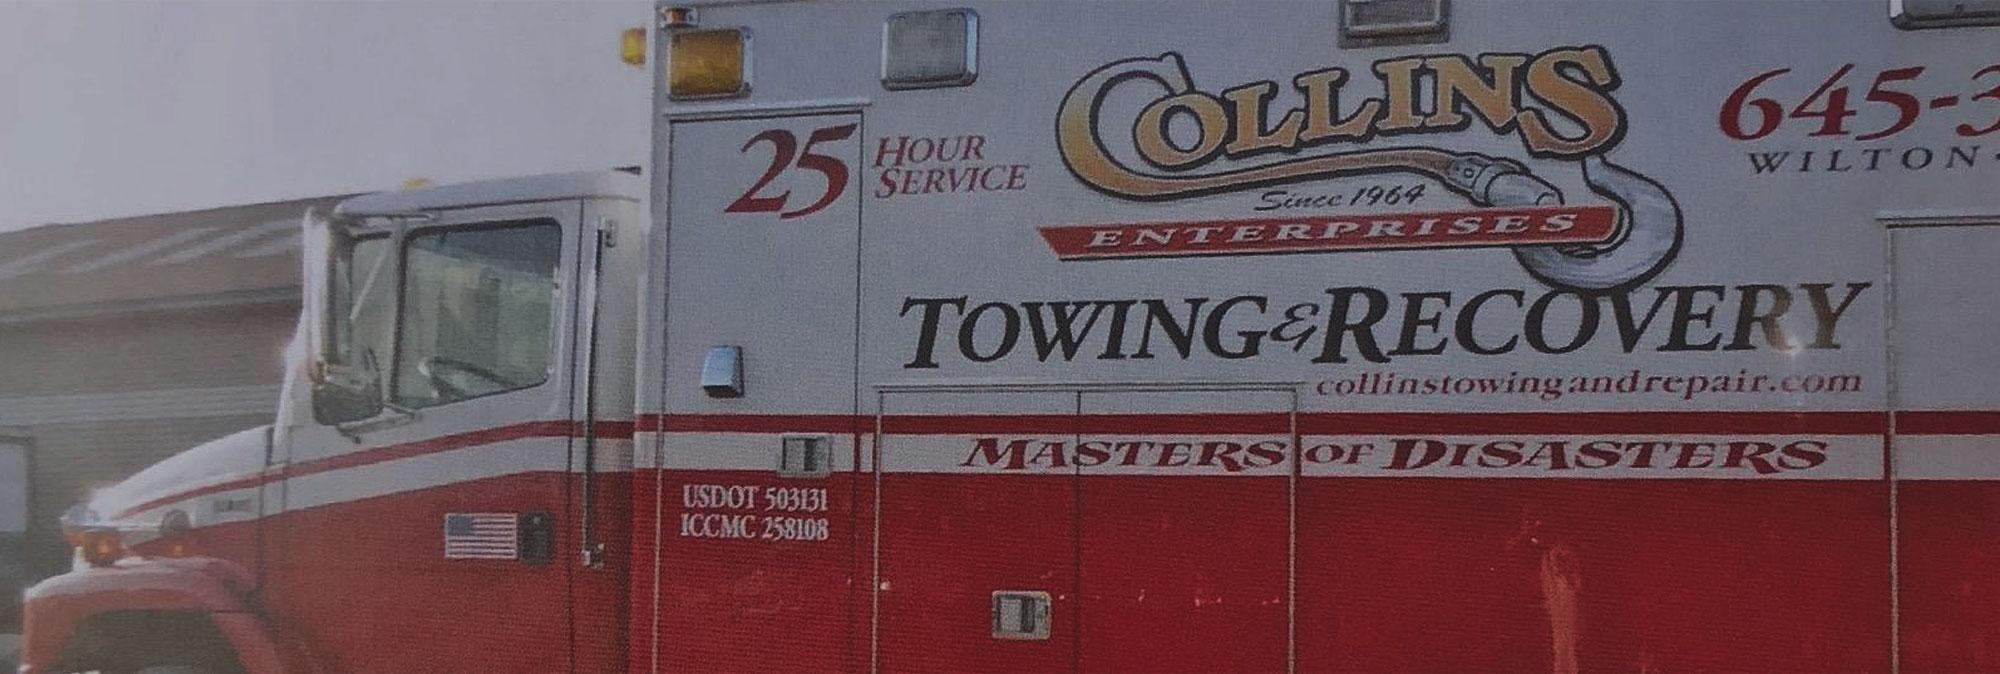 Collin's Towing & Recover